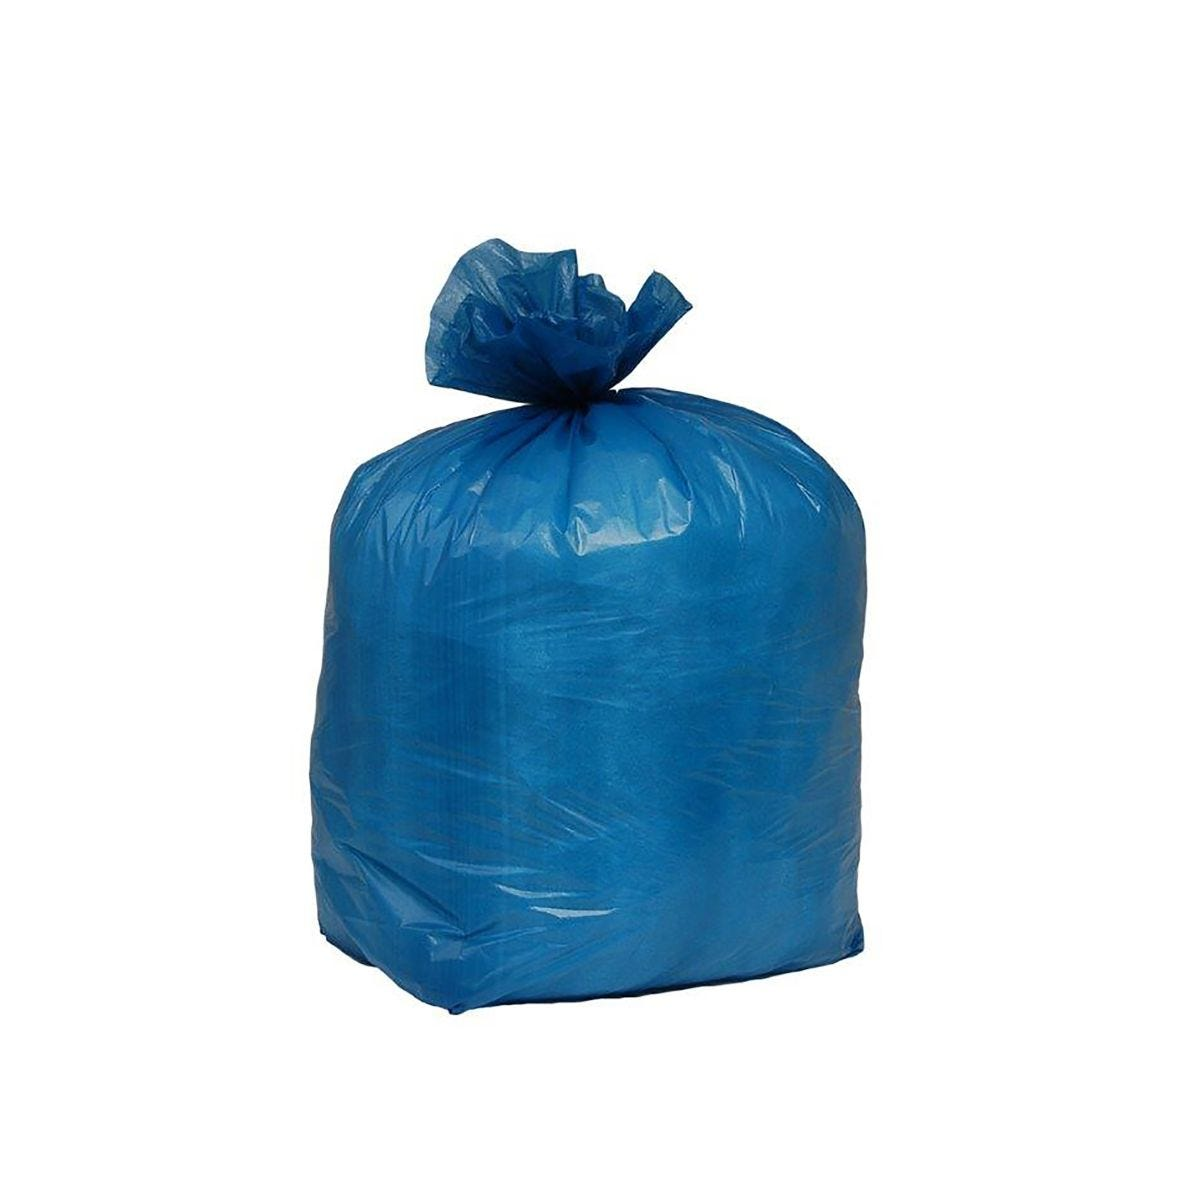 Waste Bins & Bags Cleaning Office Supplies - Ryman